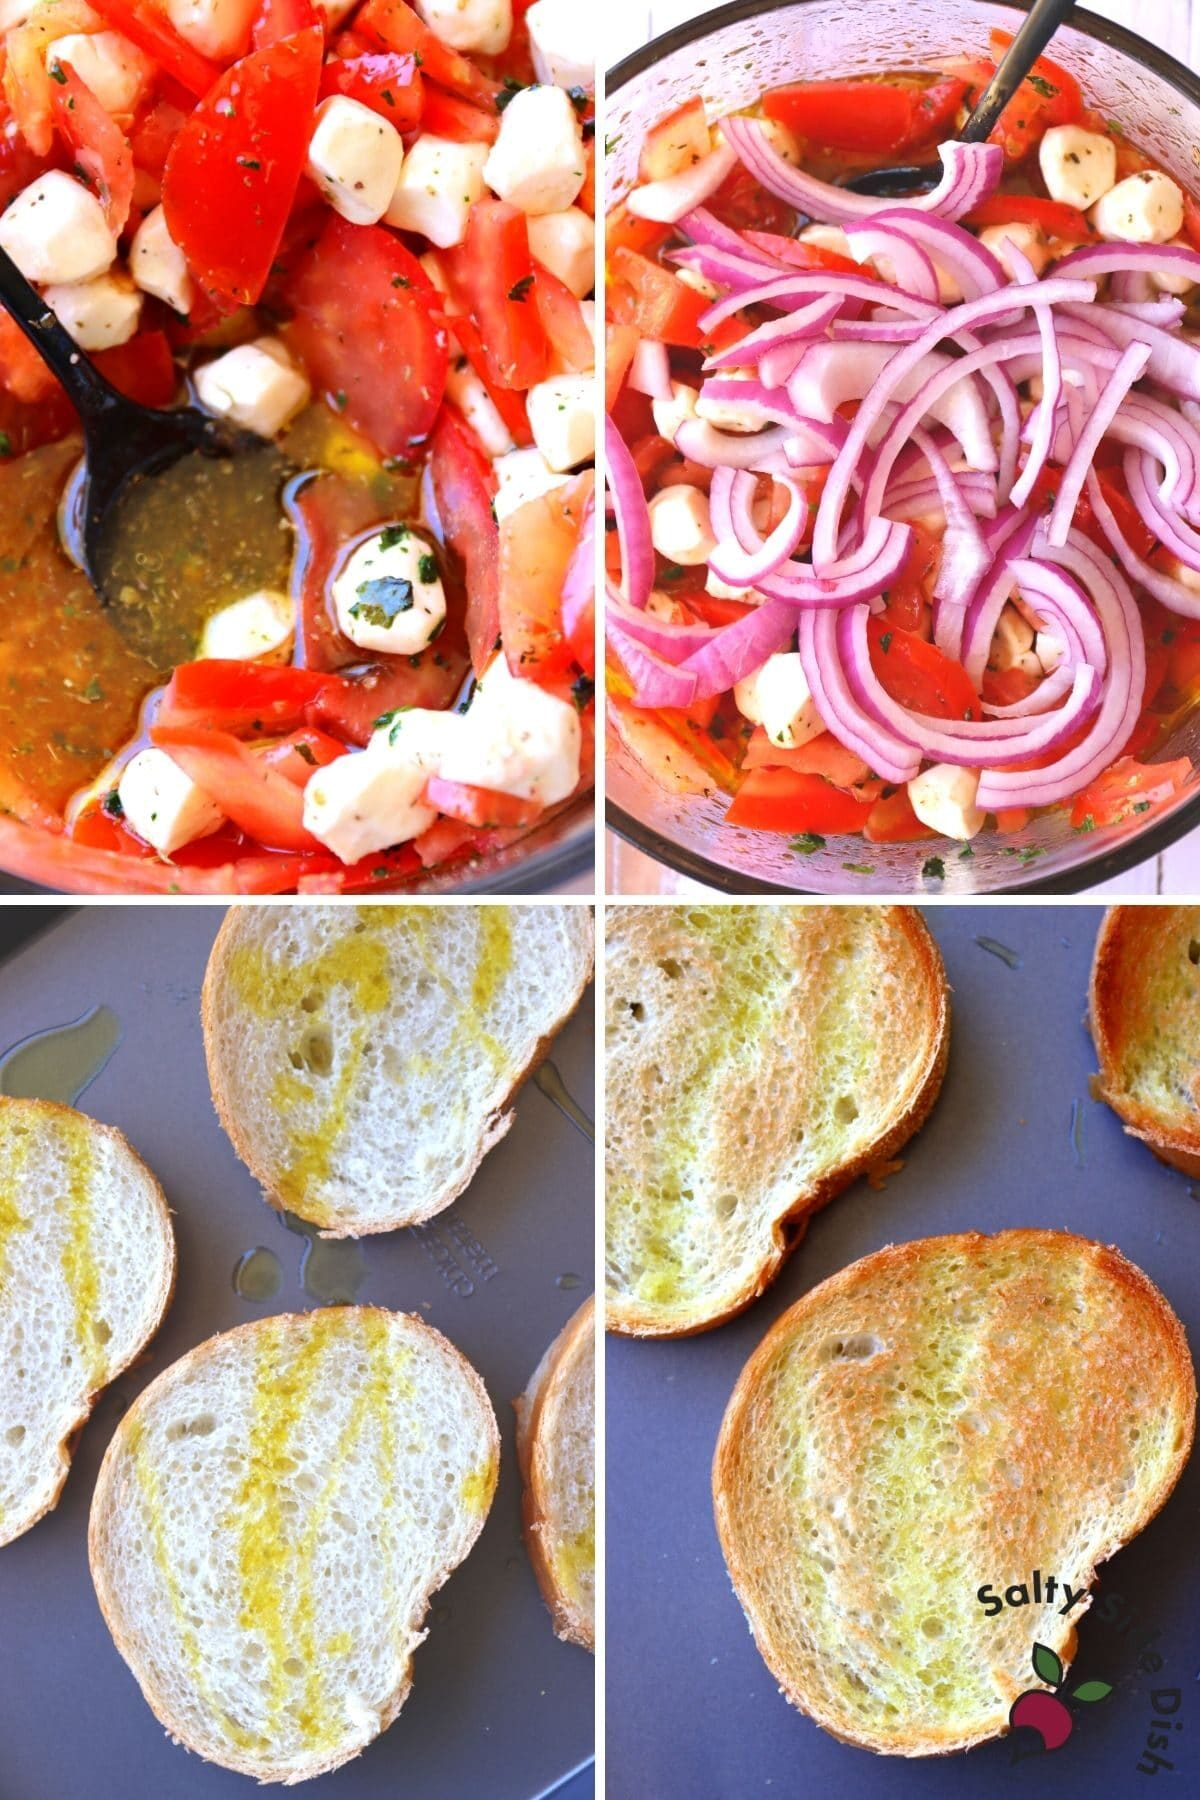 bruschette bread and bowl of tomatoes and red onions